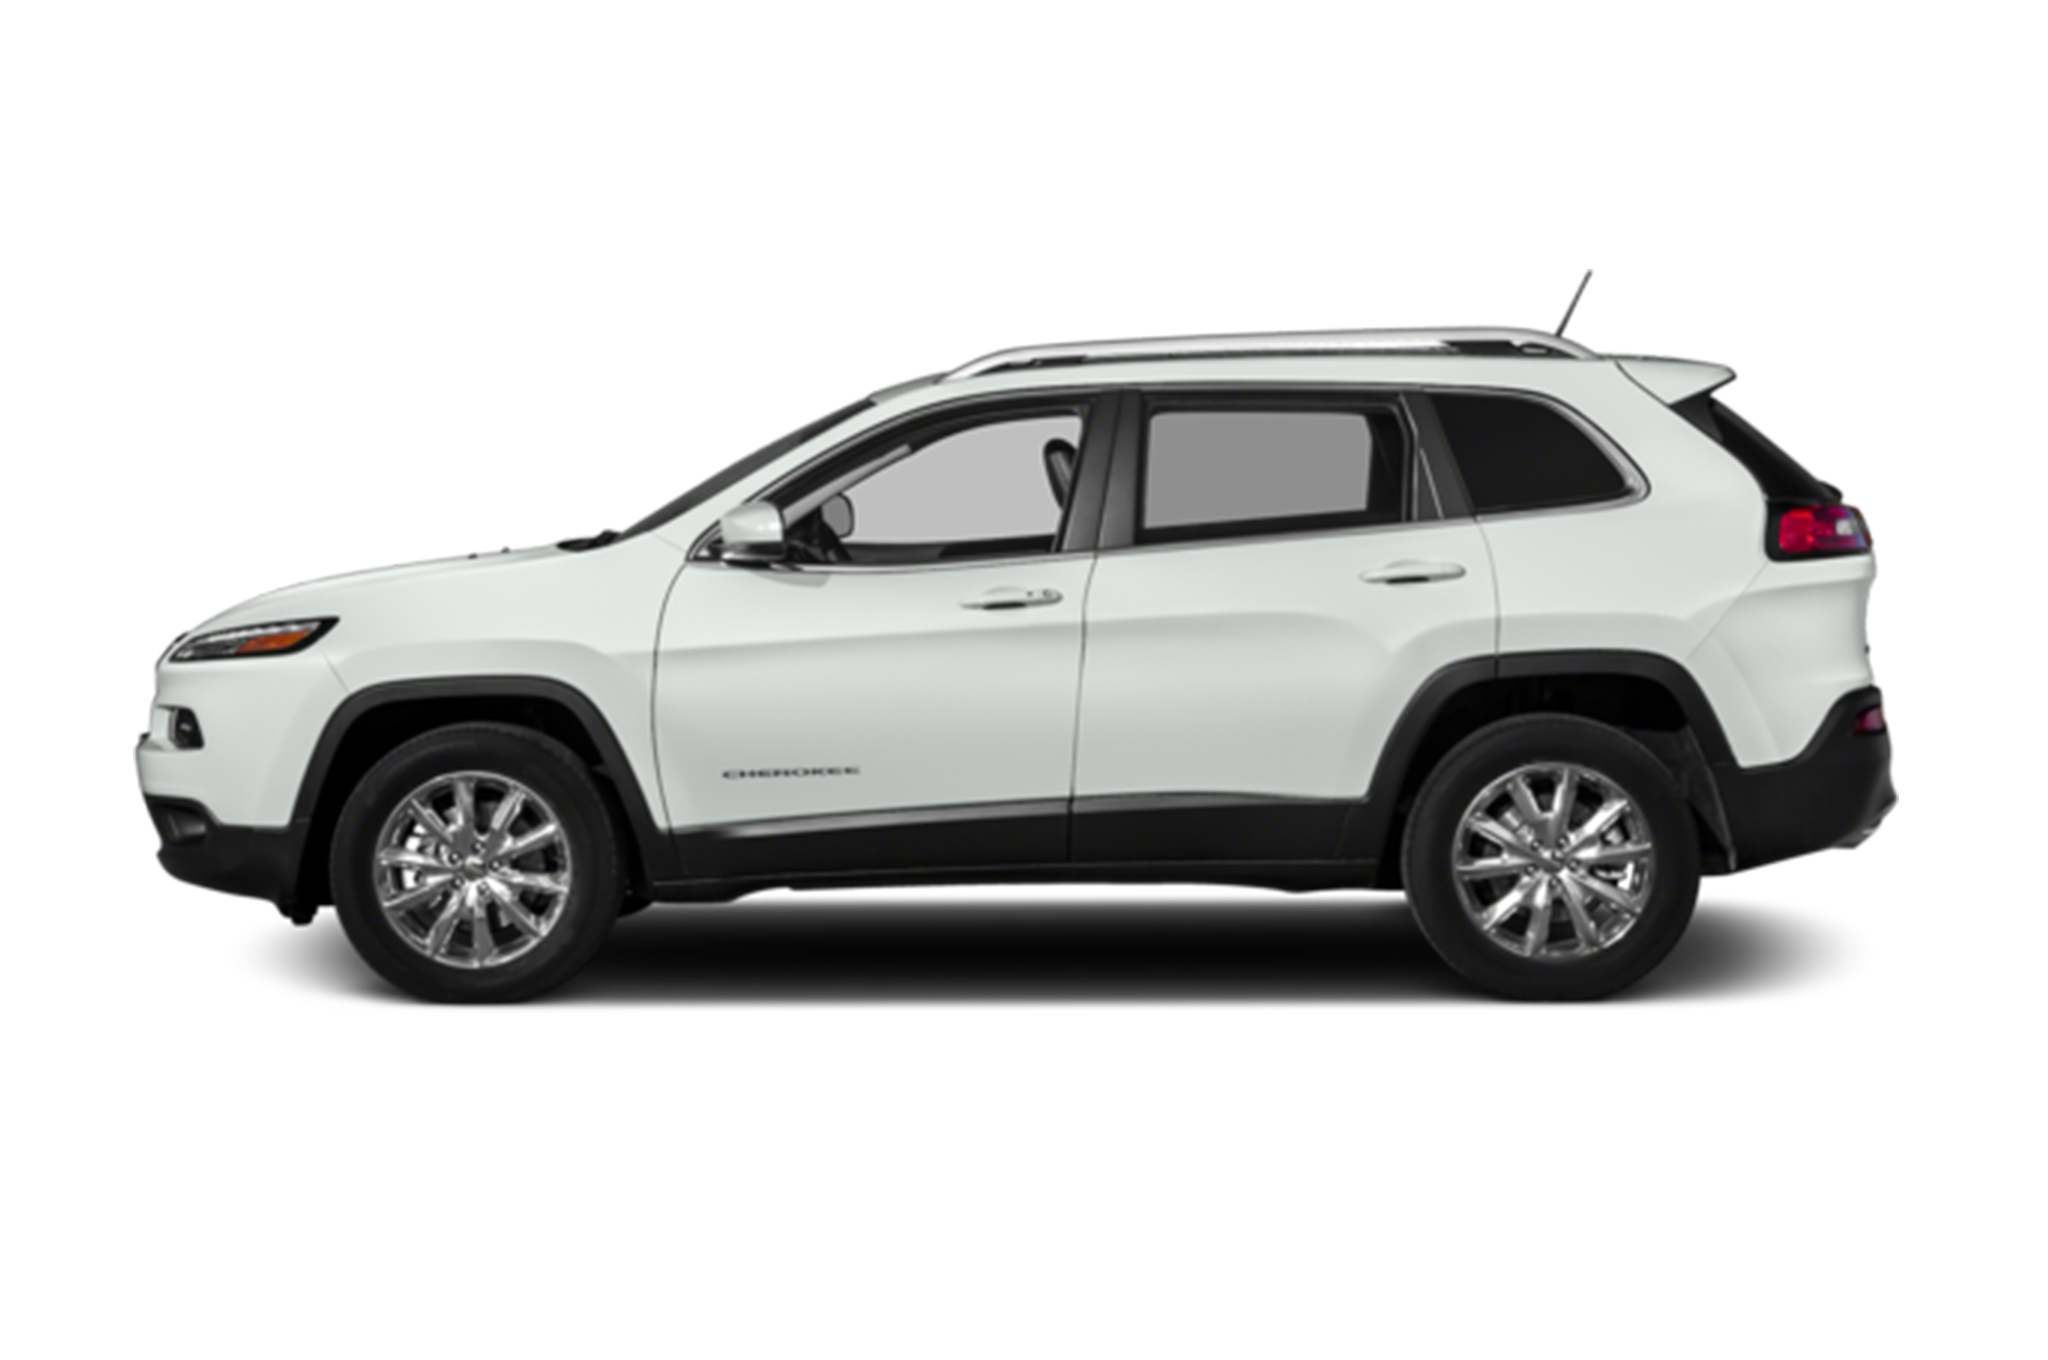 New Jeep Cherokee Delray Beach FL